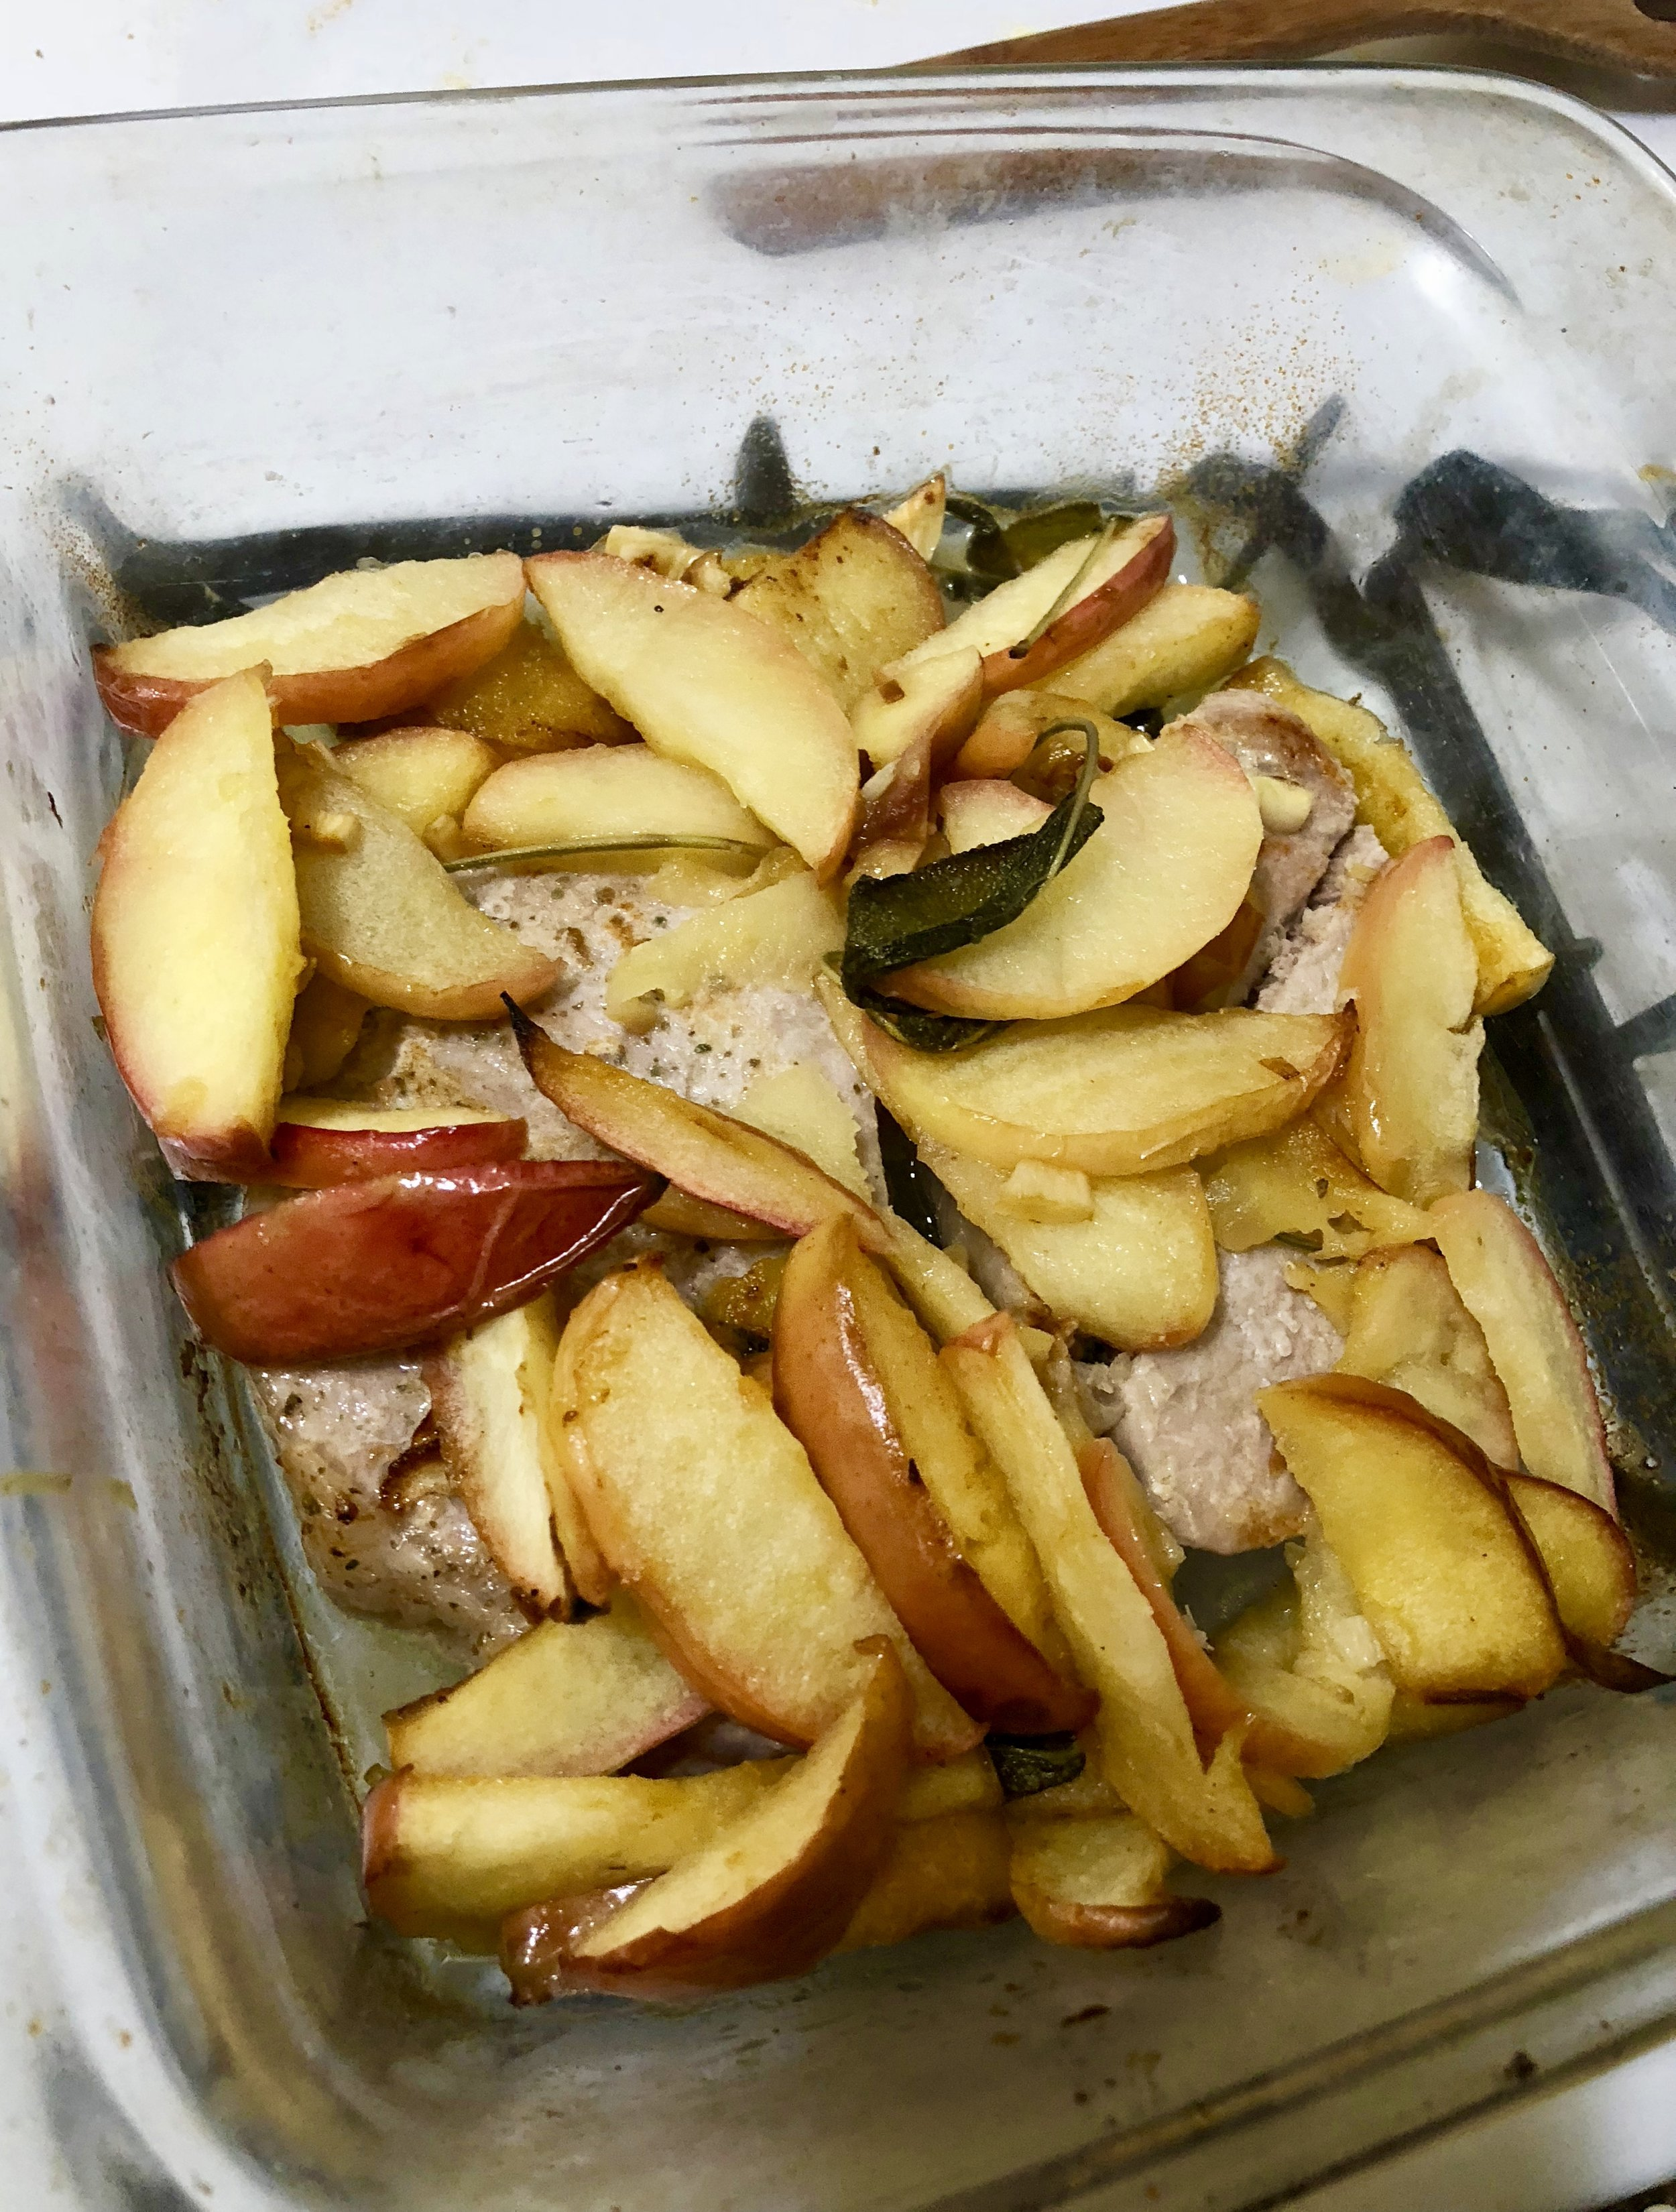 ingredients  2-3 medium Apples  pkg pf sage leaves  2 medium prod chops (trimmed- no bones)  0.25 cup of butter (you won't use the whole thing, but have on hand)  garlic (2-3 cloves)  salt   pepper